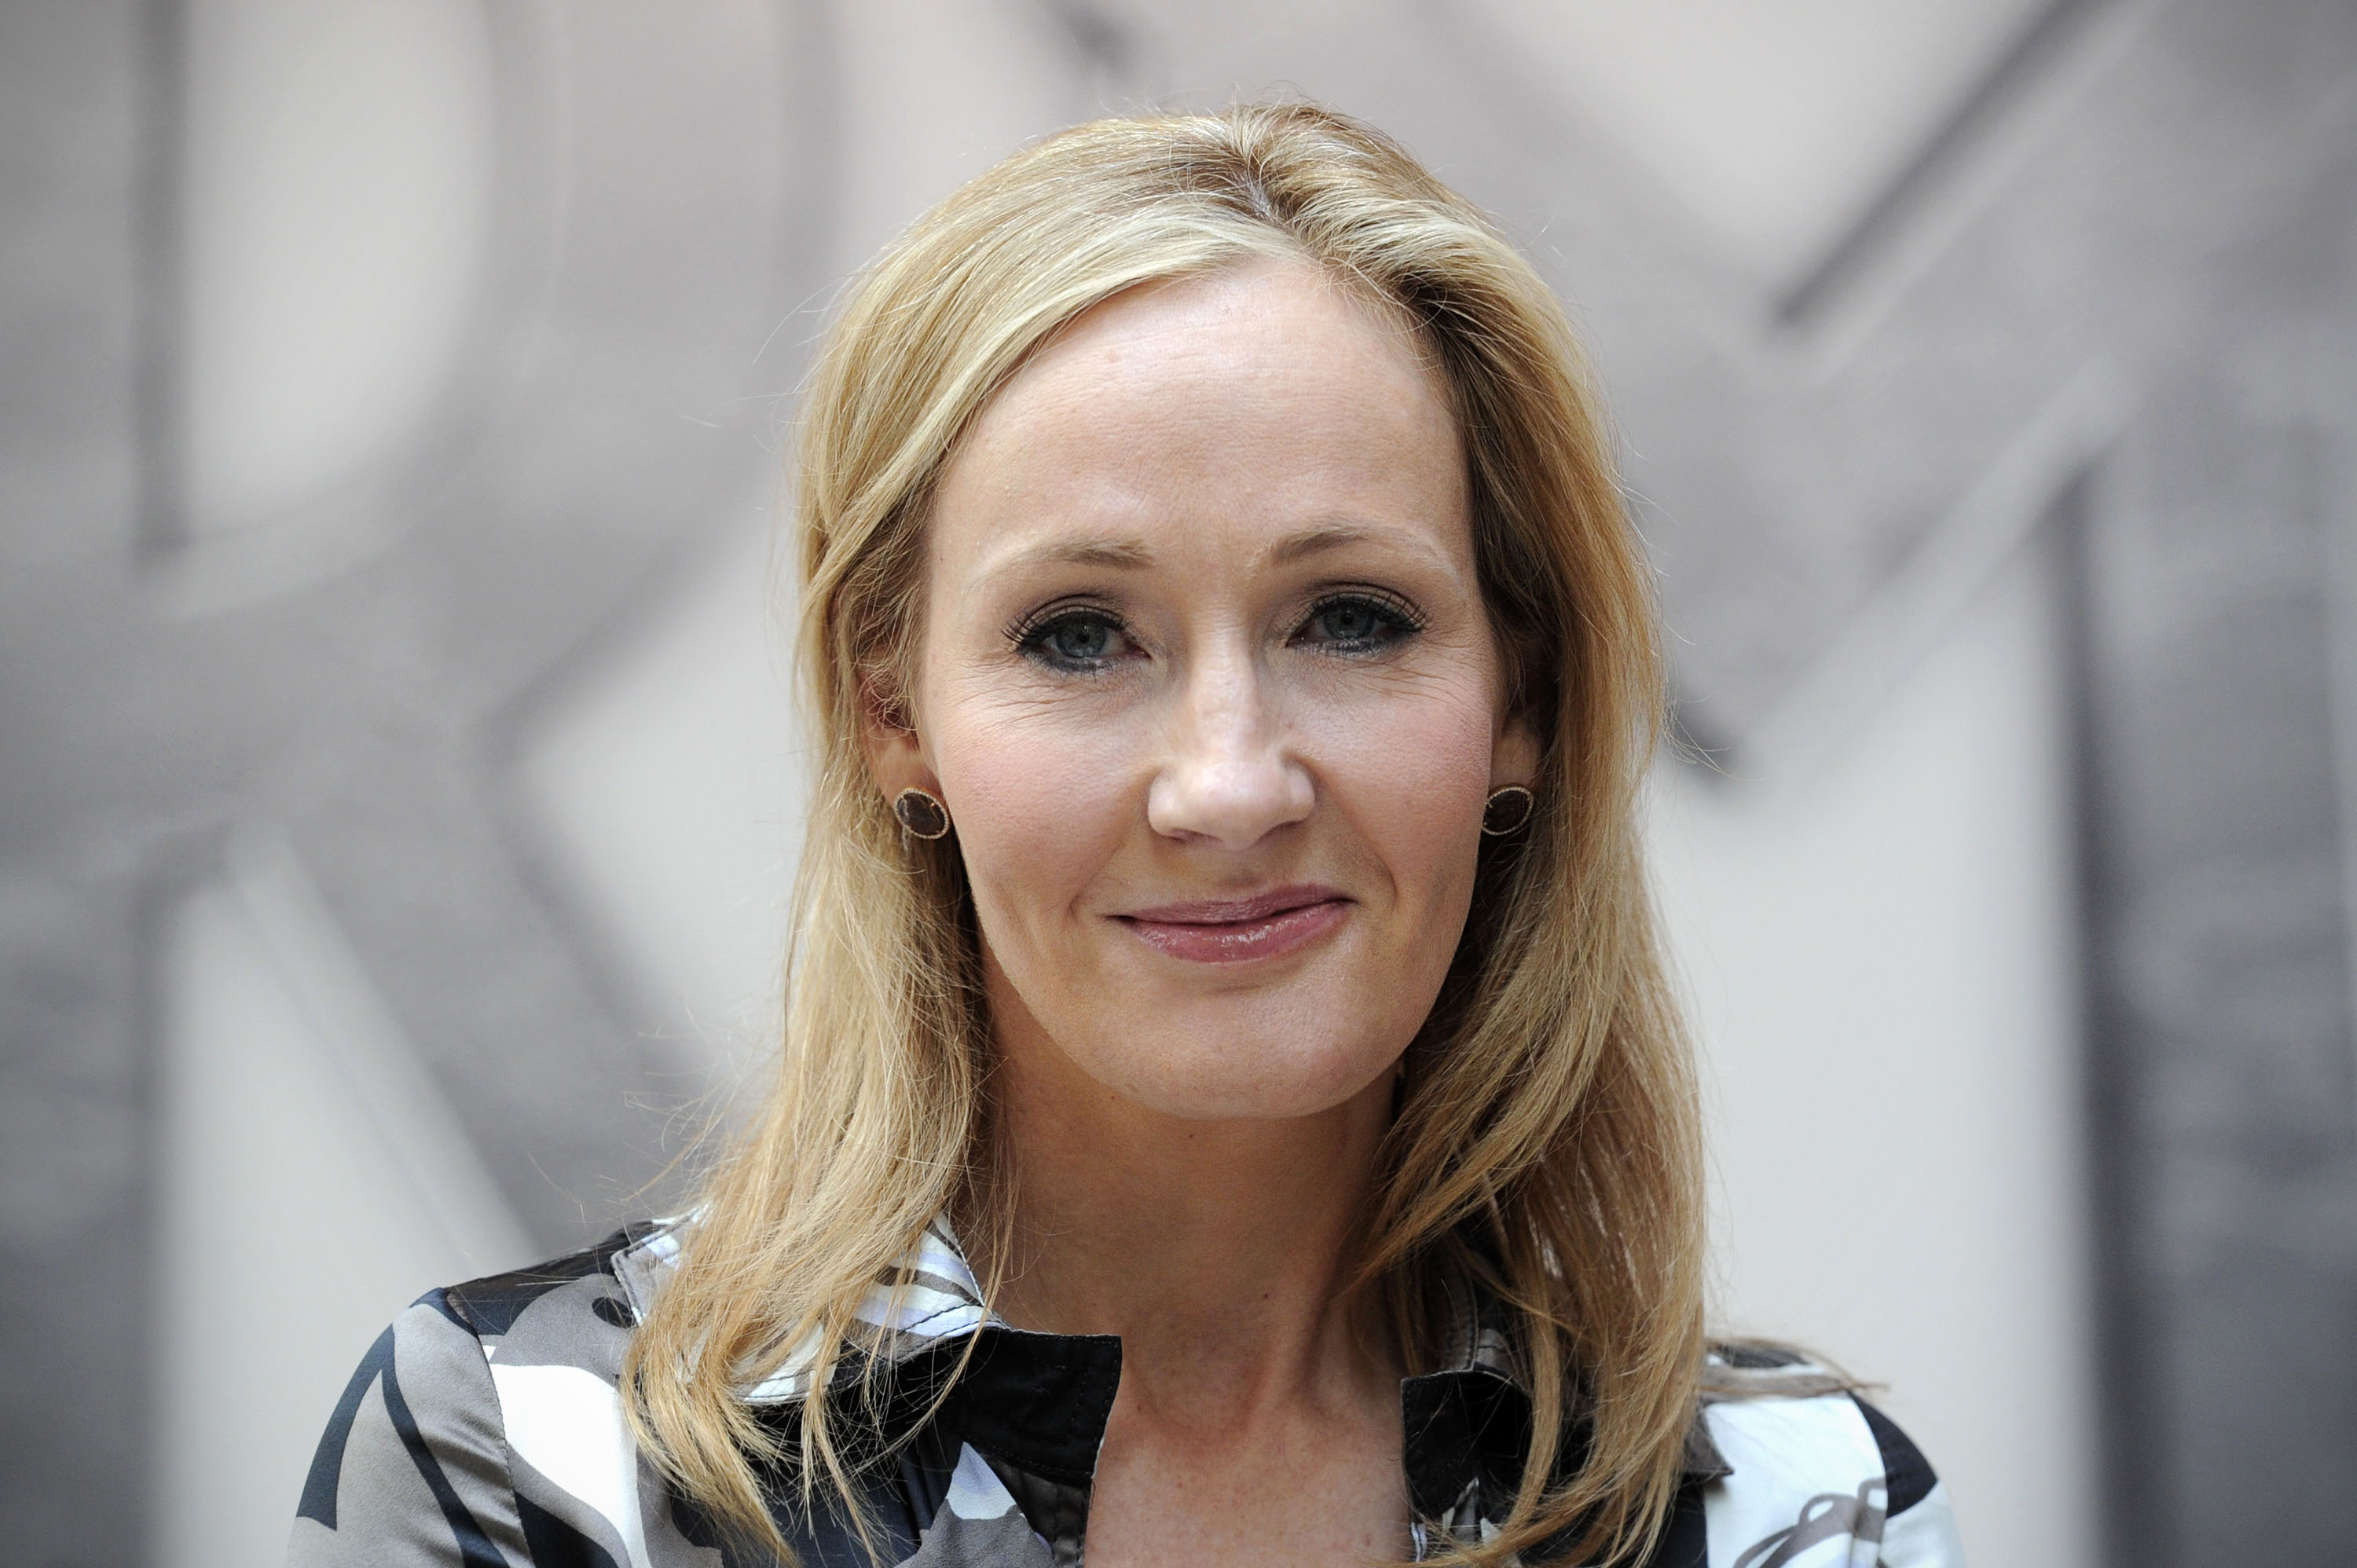 Harry Potter creator J.K. Rowling poses for photographers in central London, on June 23, 2011.